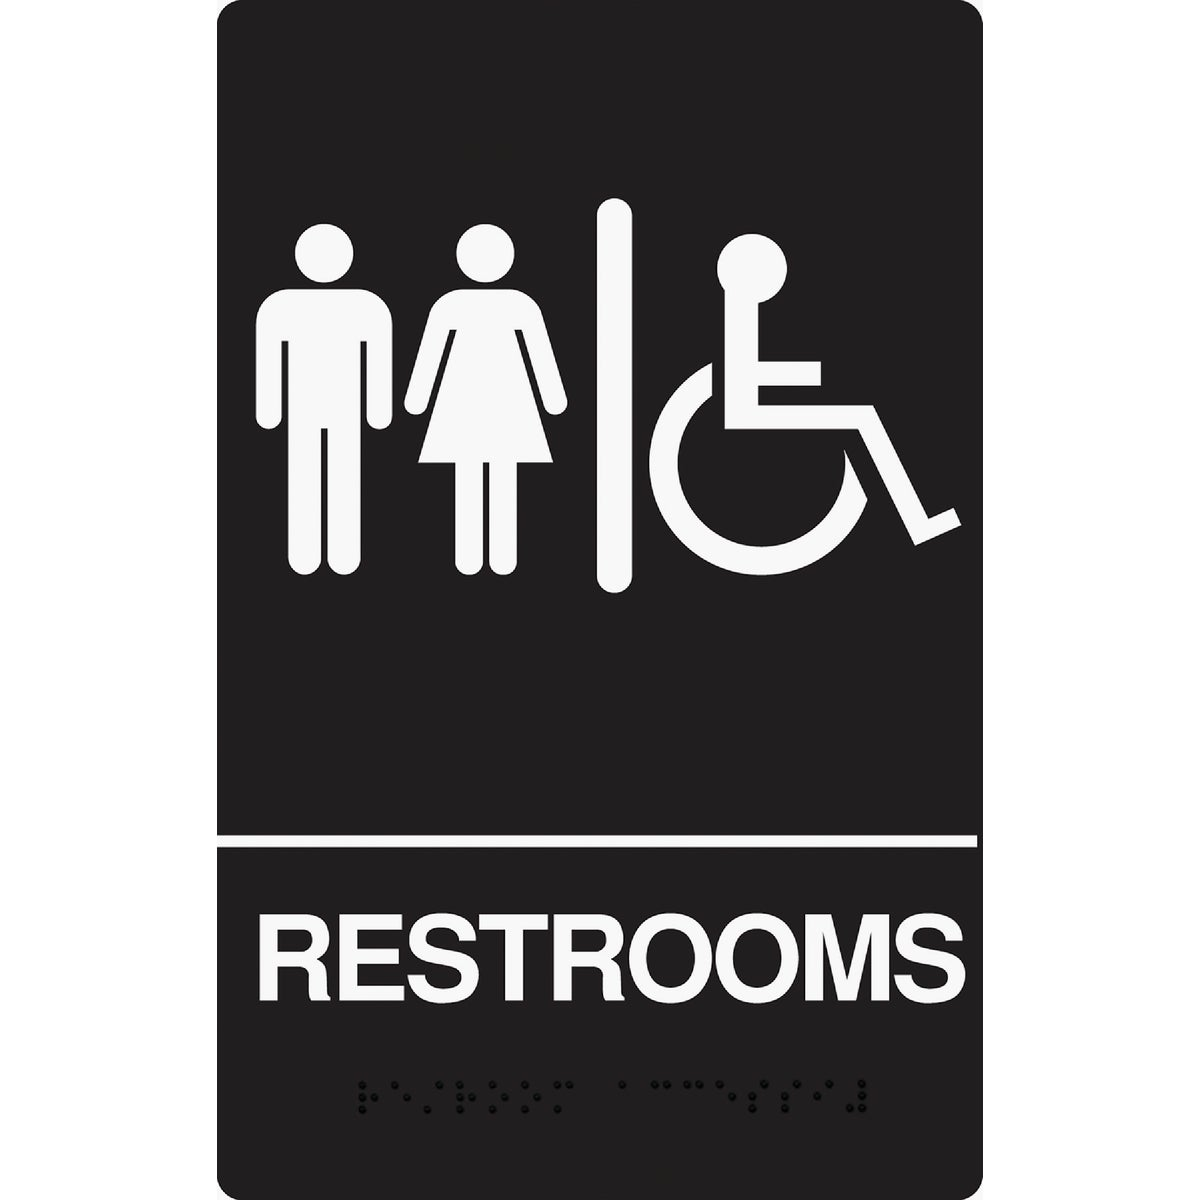 6X9 BRAILLE RESTROM SIGN